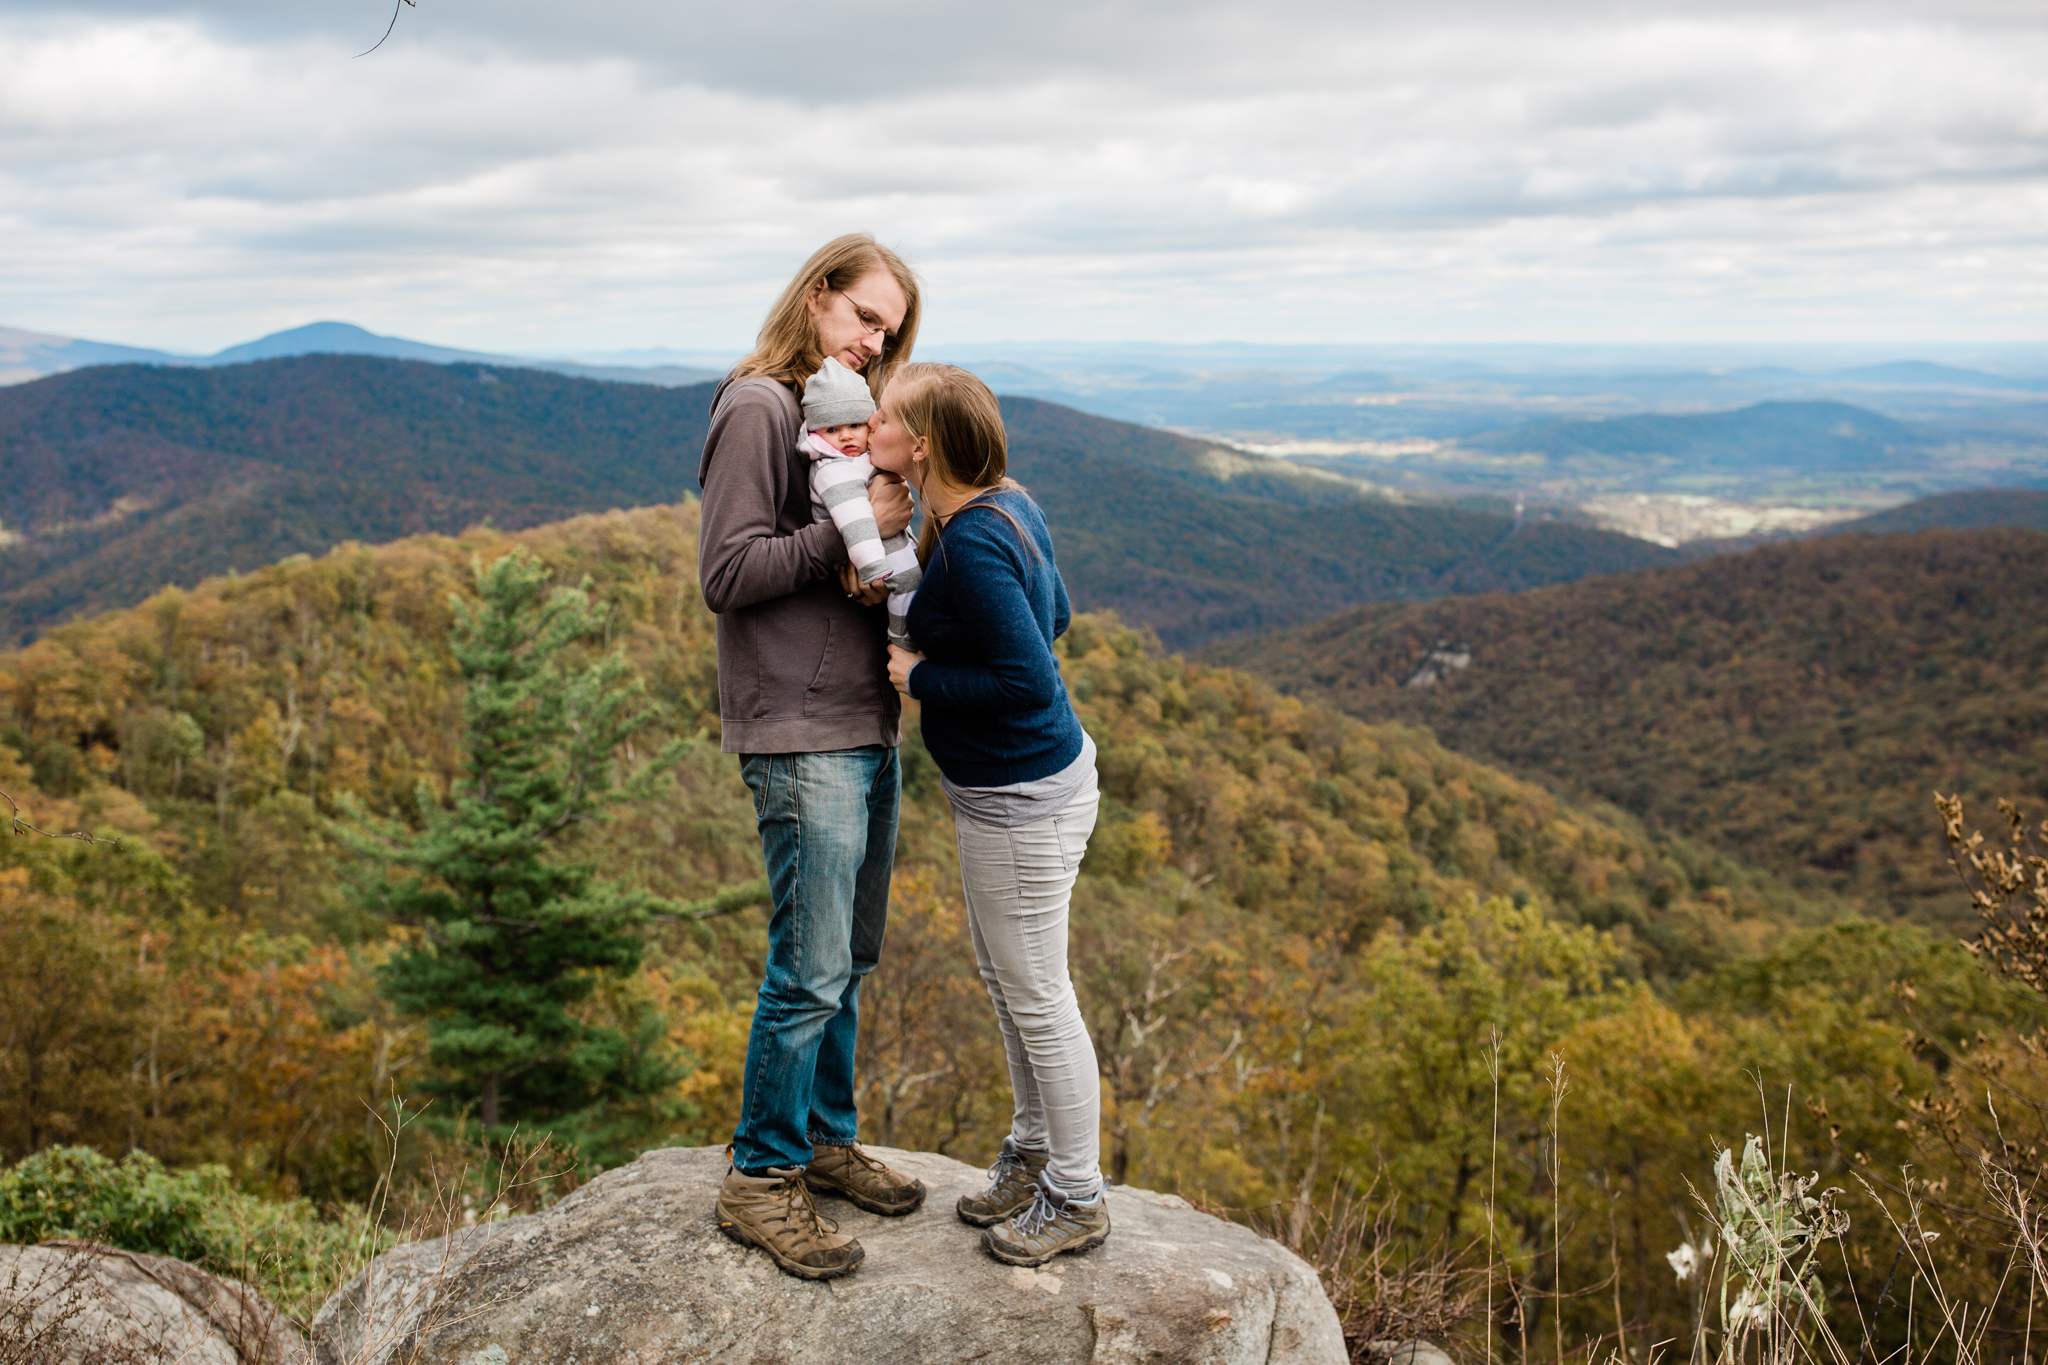 Heidi is a sweet friend I've known for more than ten years! When she asked me if I could take some photos of her family in Shenandoah National Park after a sunrise engagement session I had scheduled earlier in the day I couldn't say no! Welcome to the world sweet Auri.